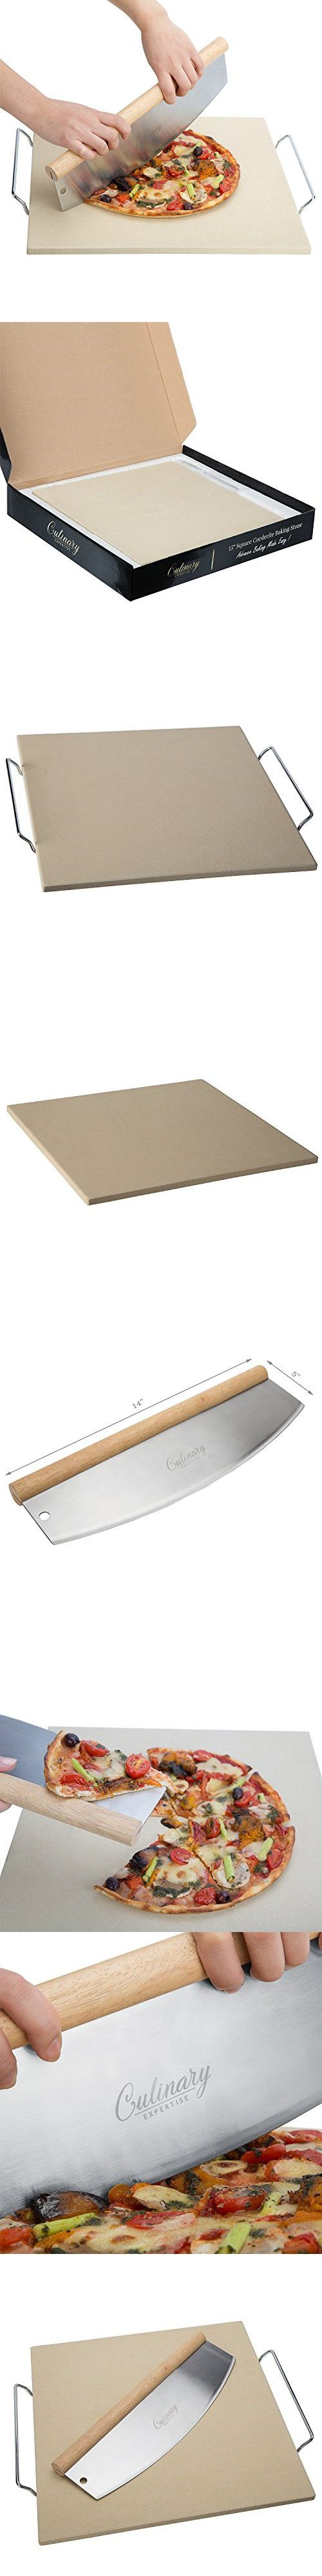 Culinary Expertise Cordierite Pizza Stone, 15 Inch Square with 14 Inch Cutter and Removable Chrome Handles | Thermal Shock Resistant on Oven or Grill Top